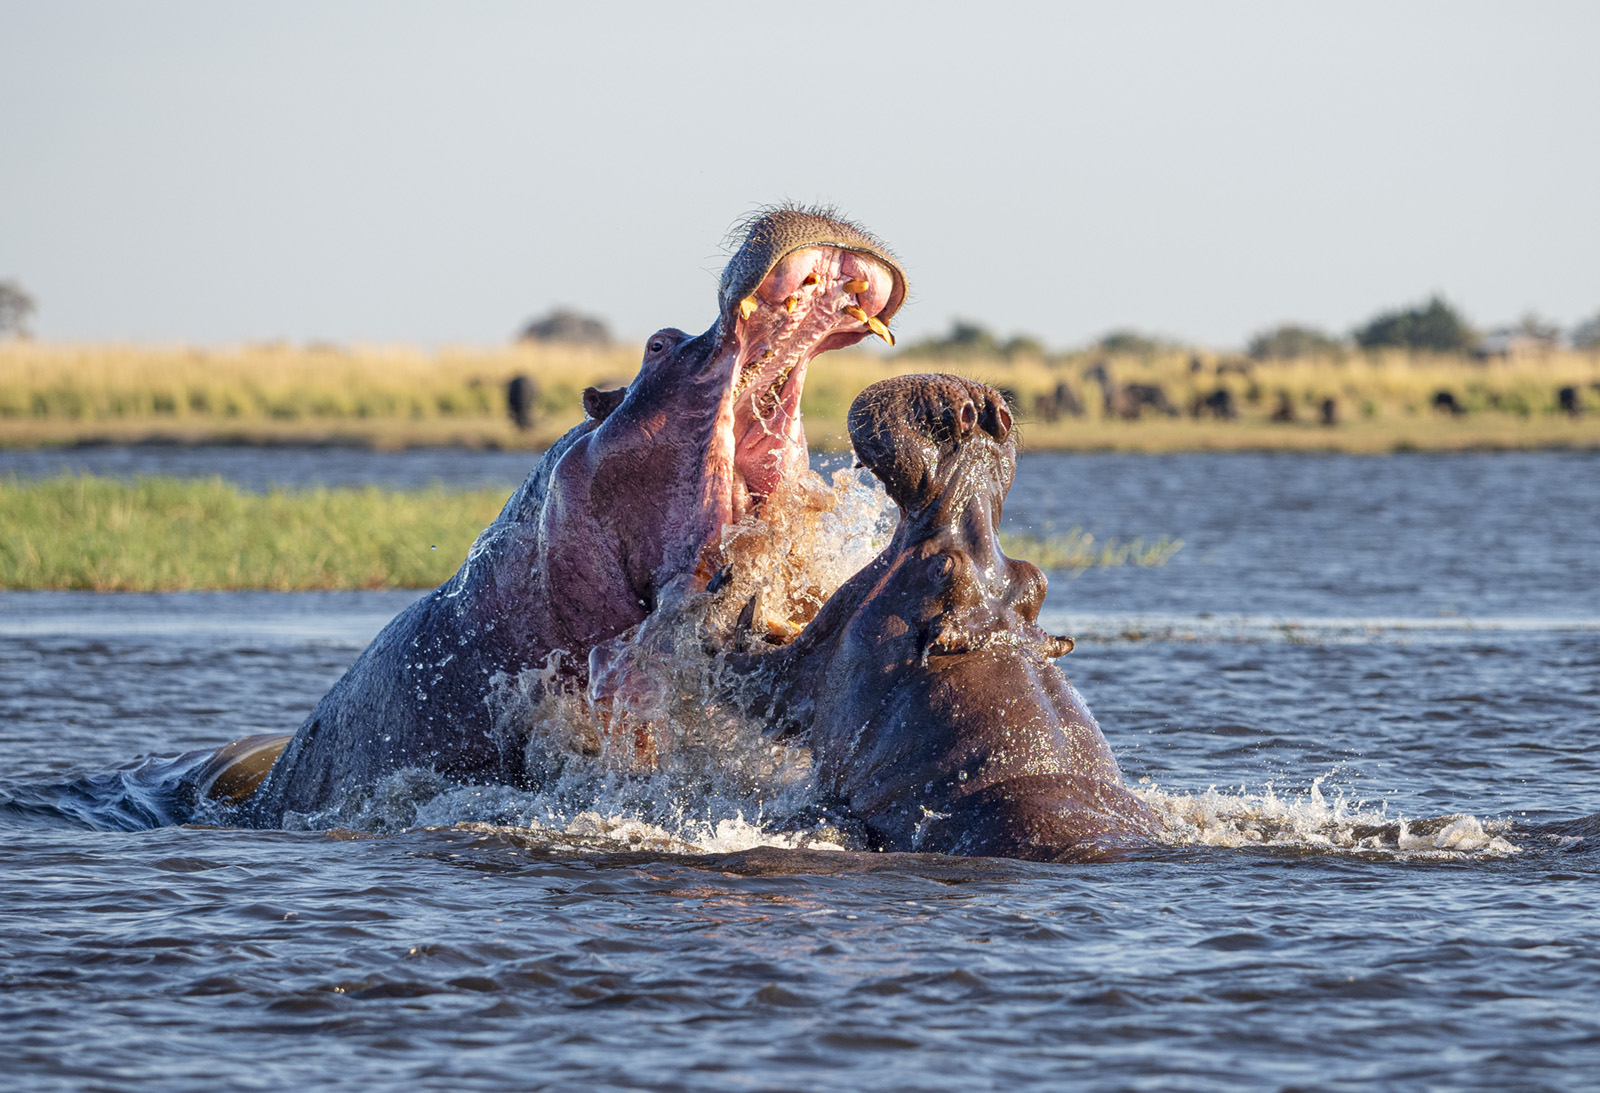 2022 Chobe National Park, Botswana – Land and Water May 31 – June 6